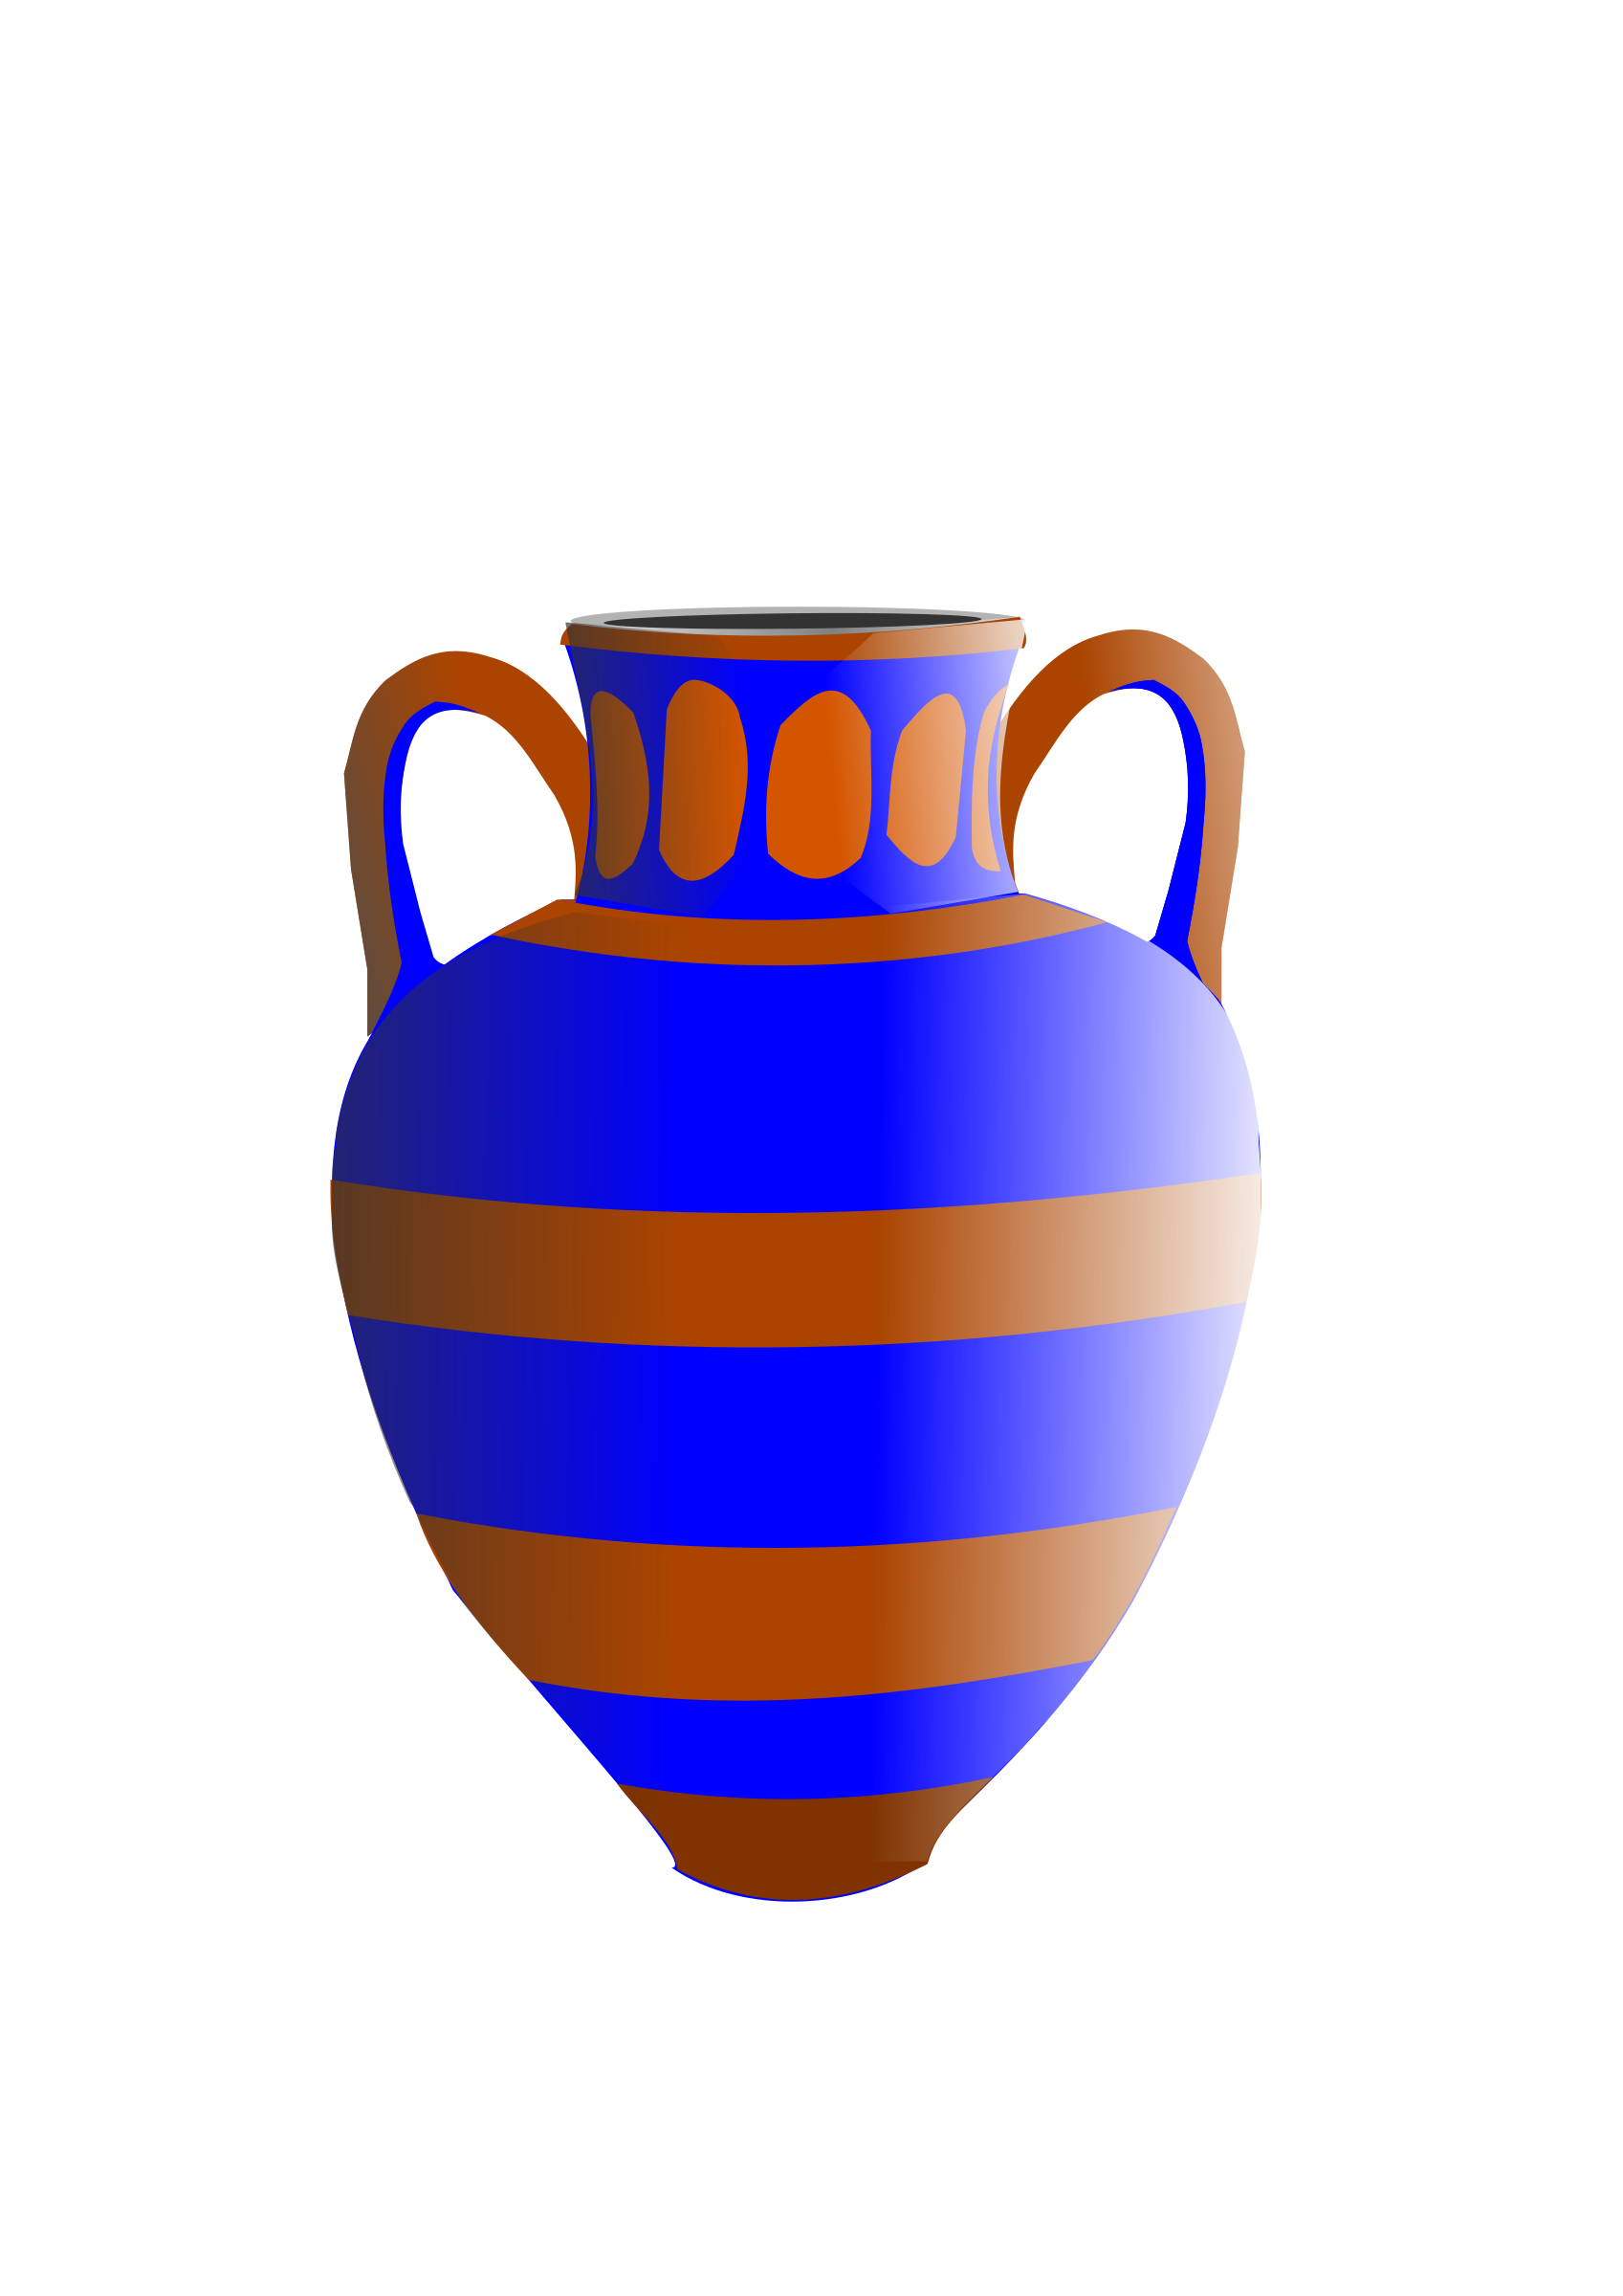 old fashioned vase blue and brown by hatalar205